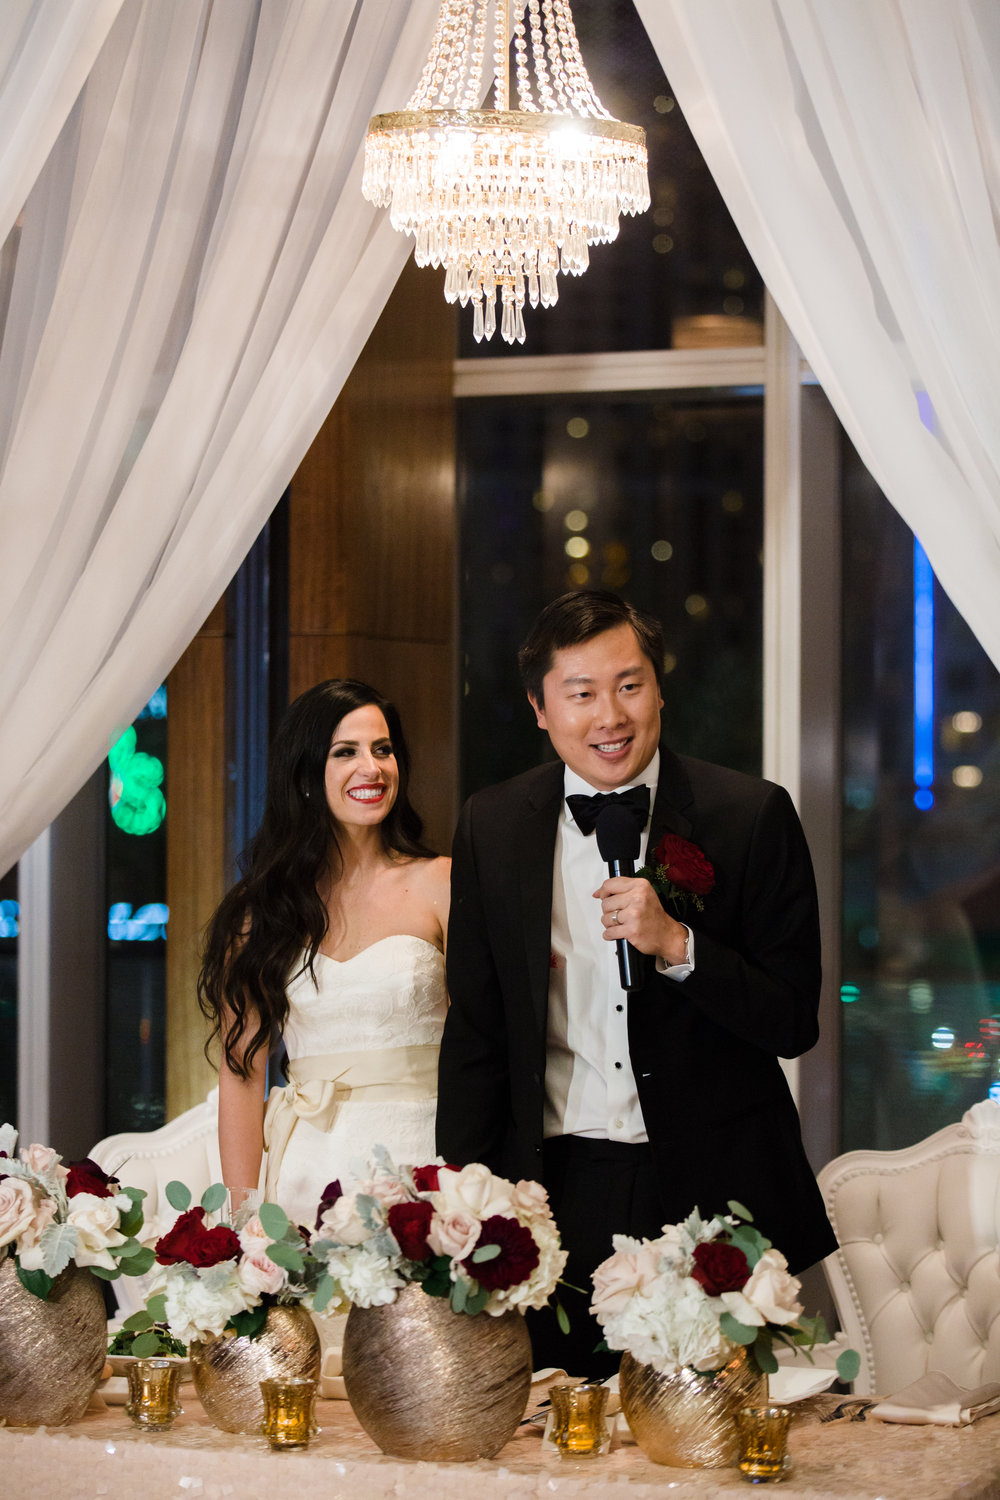 Thank you toast from the bride and groom.  Luxury wedding at the Mandarin Oriental with a color scheme of white, blush, and pops of wine red produced by Las Vegas Wedding Planner Andrea Eppolito with photos by Stephen Salazar Photography.